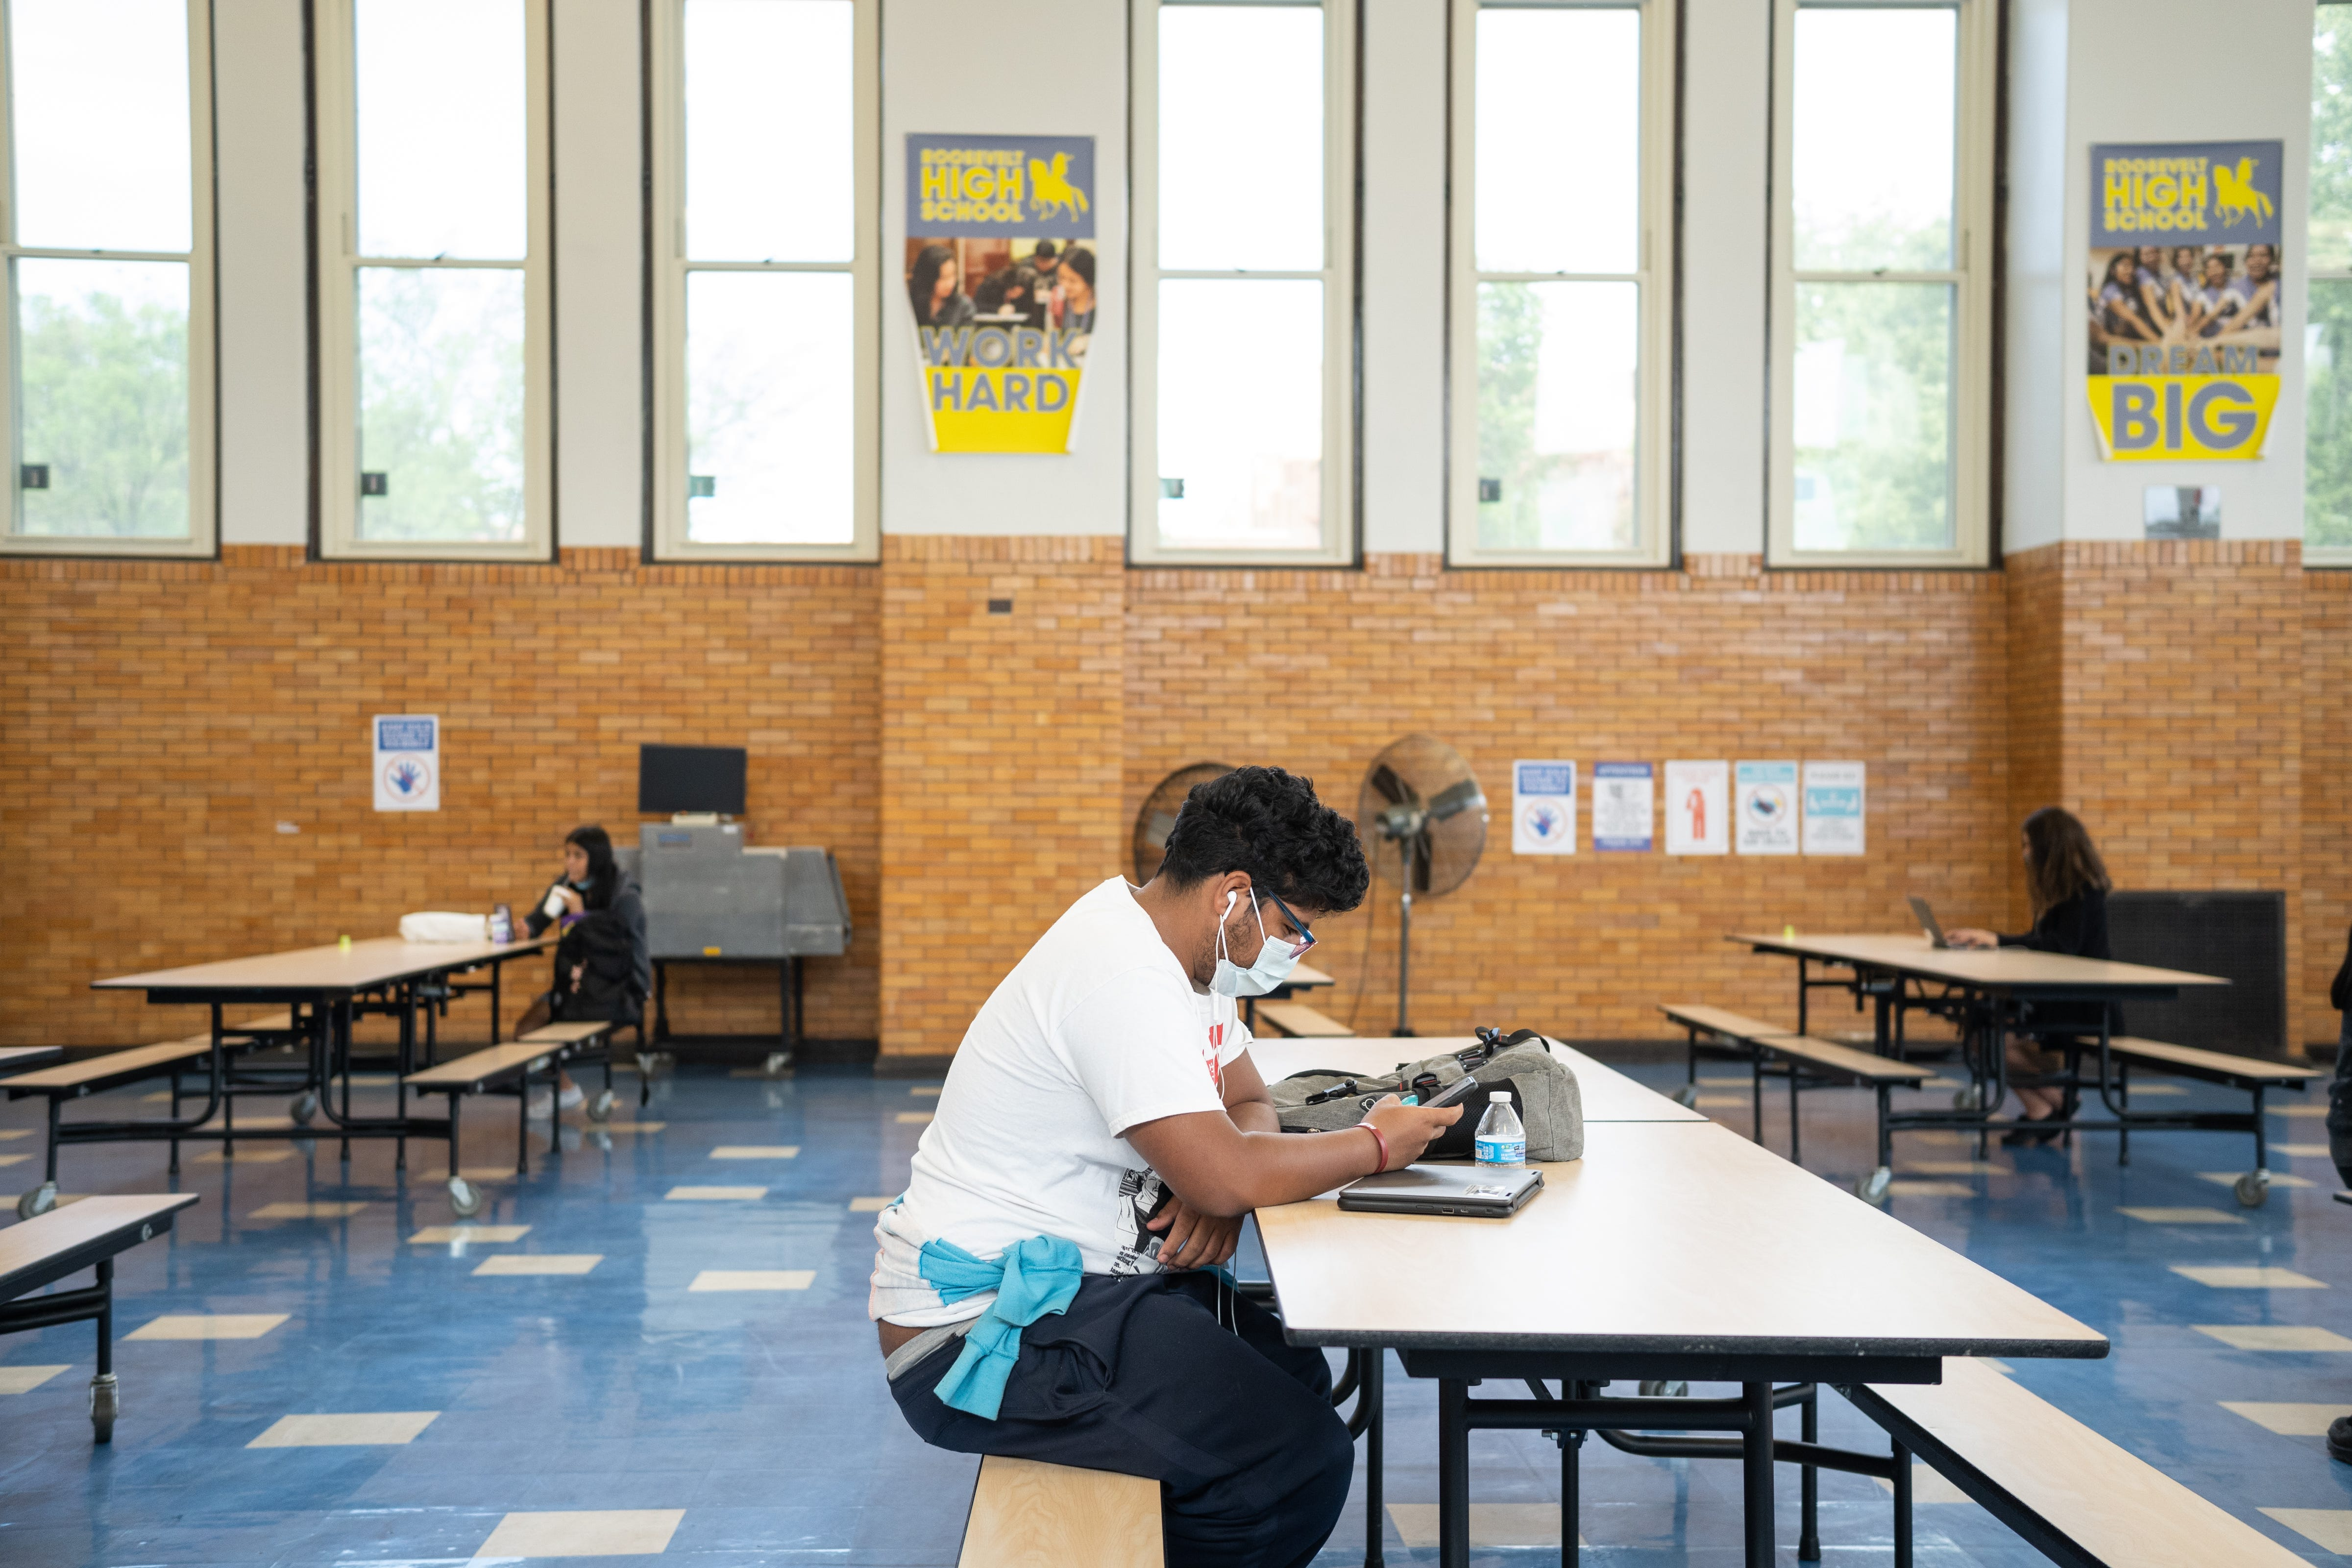 Nathaniel Martinez continued to log into his classes, but struggled to stay engaged.